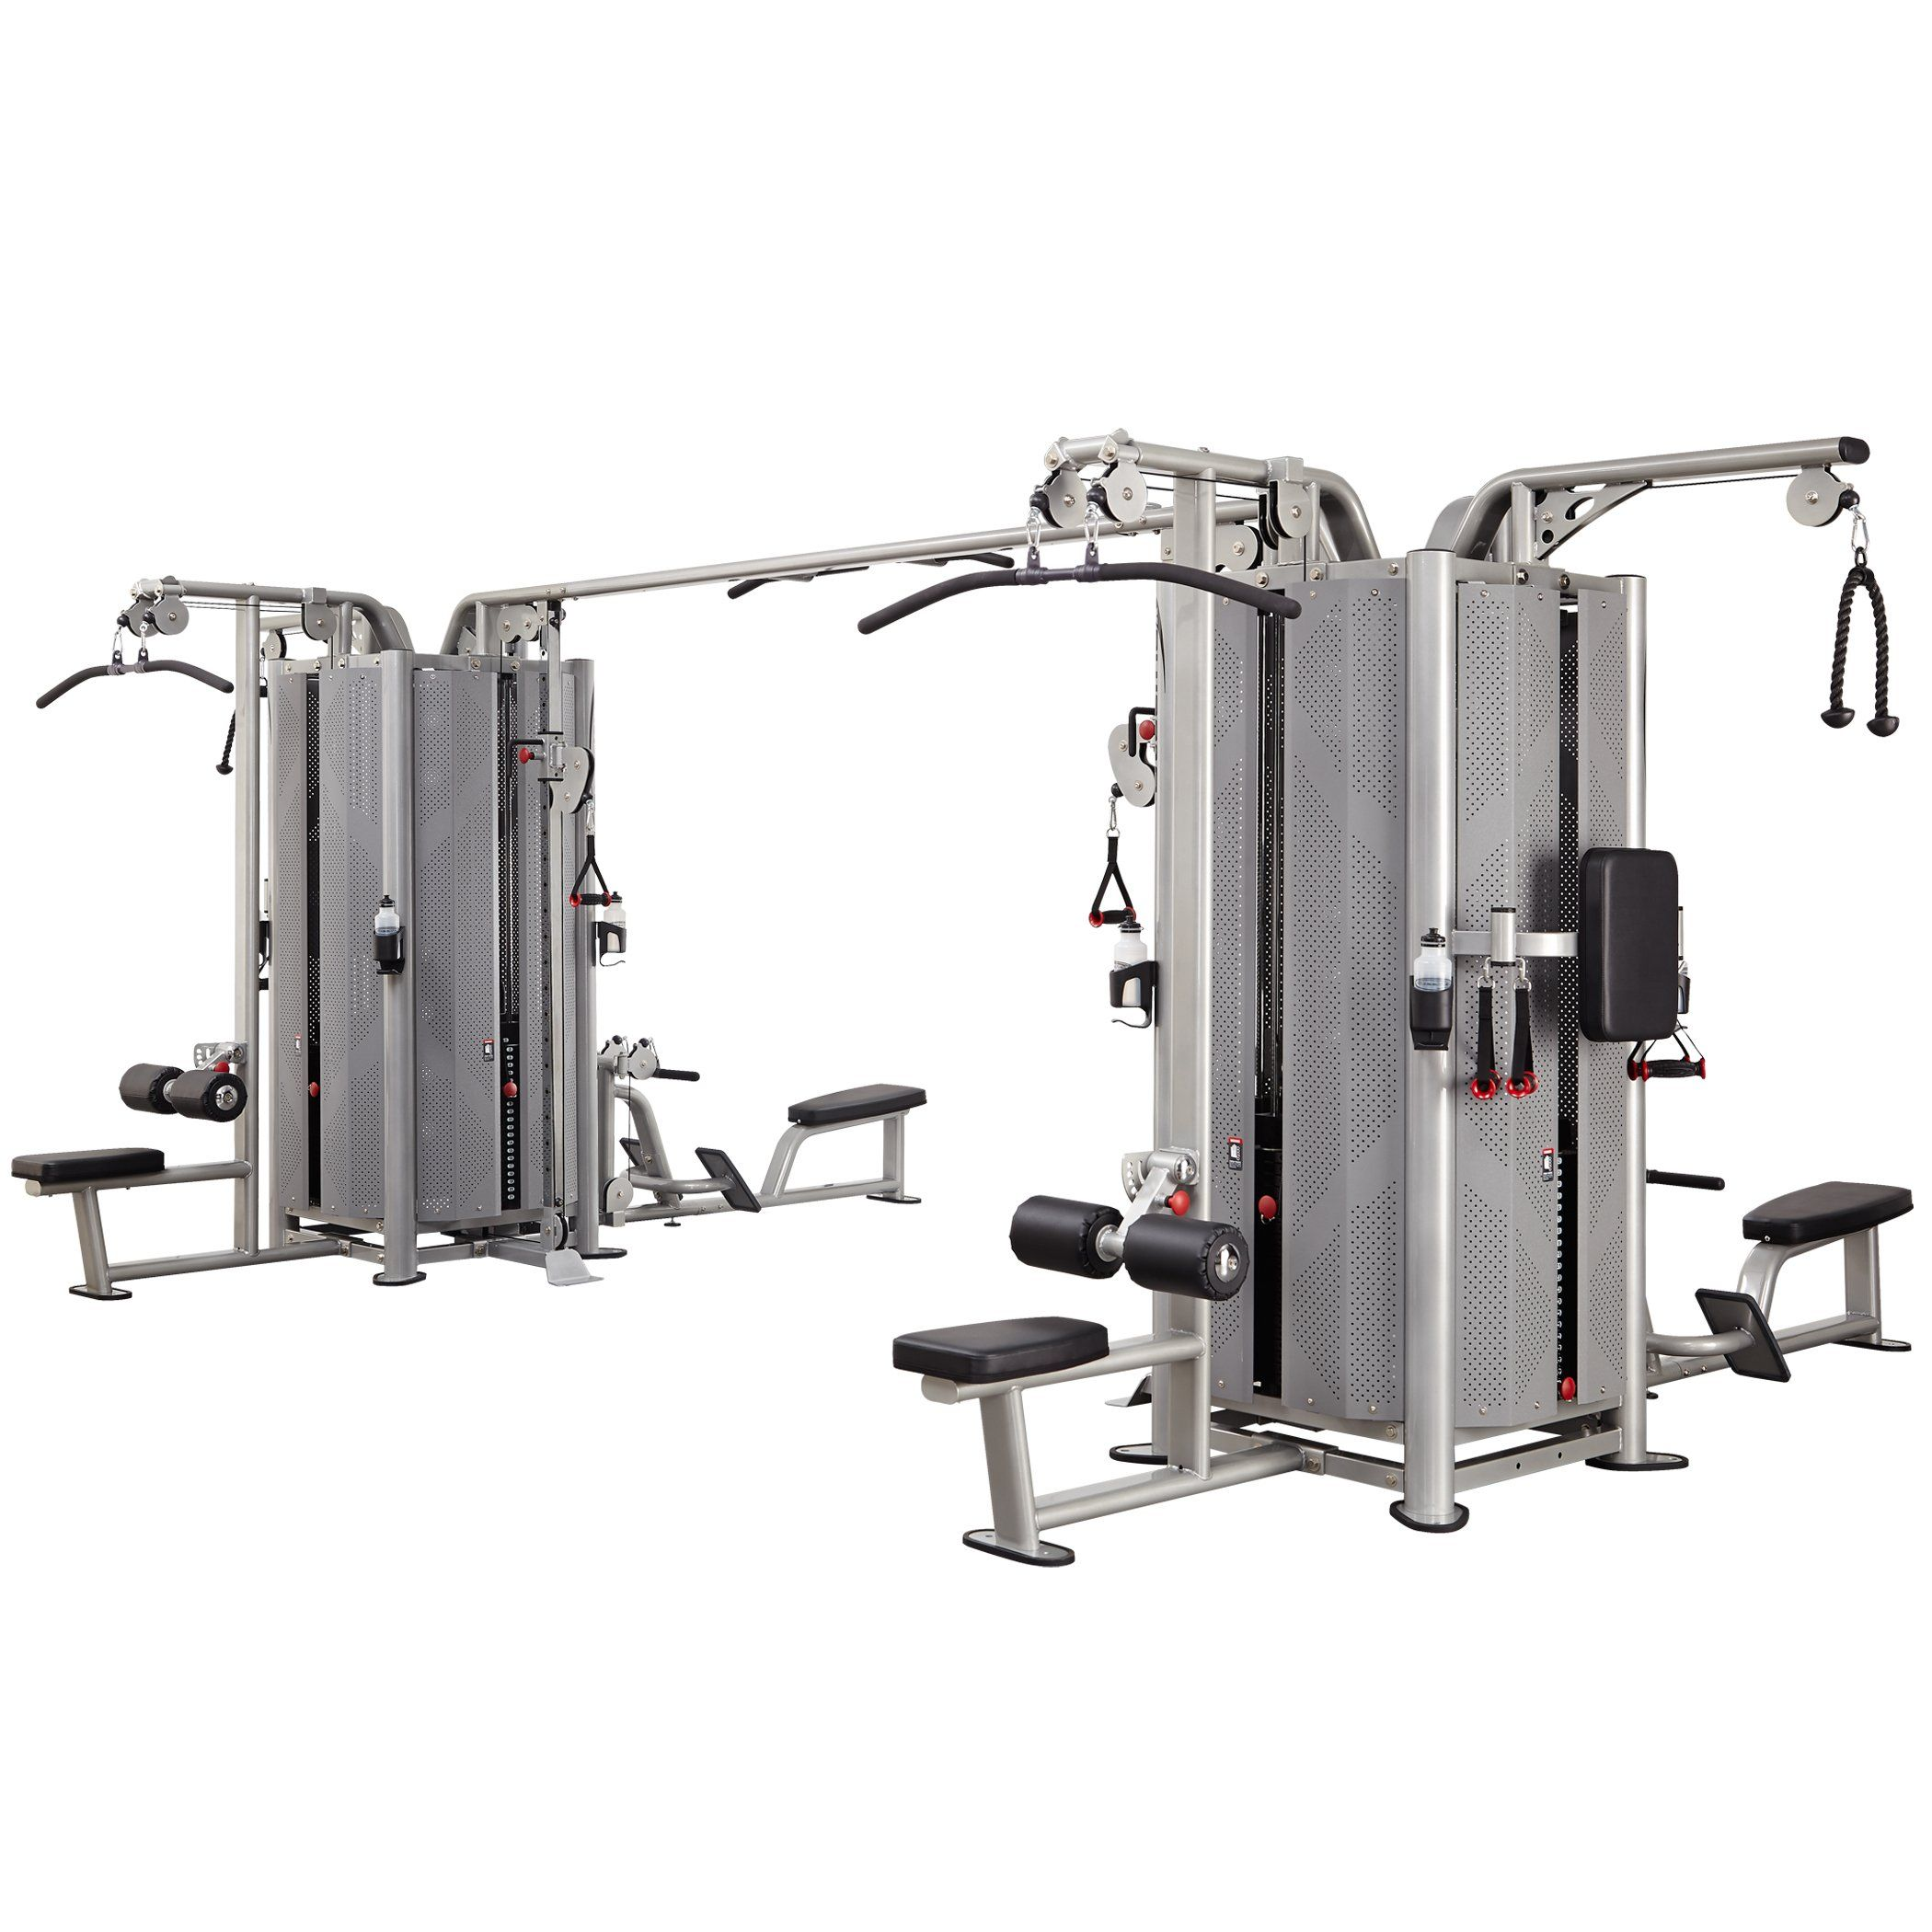 Jg8000s Steelflex Jungle Gyms Physicaleducationequipment Gym Fit Workout Fittnessequipment Ohi Equipo Para Hacer Ejercicio Hacer Ejercicio Musculacion